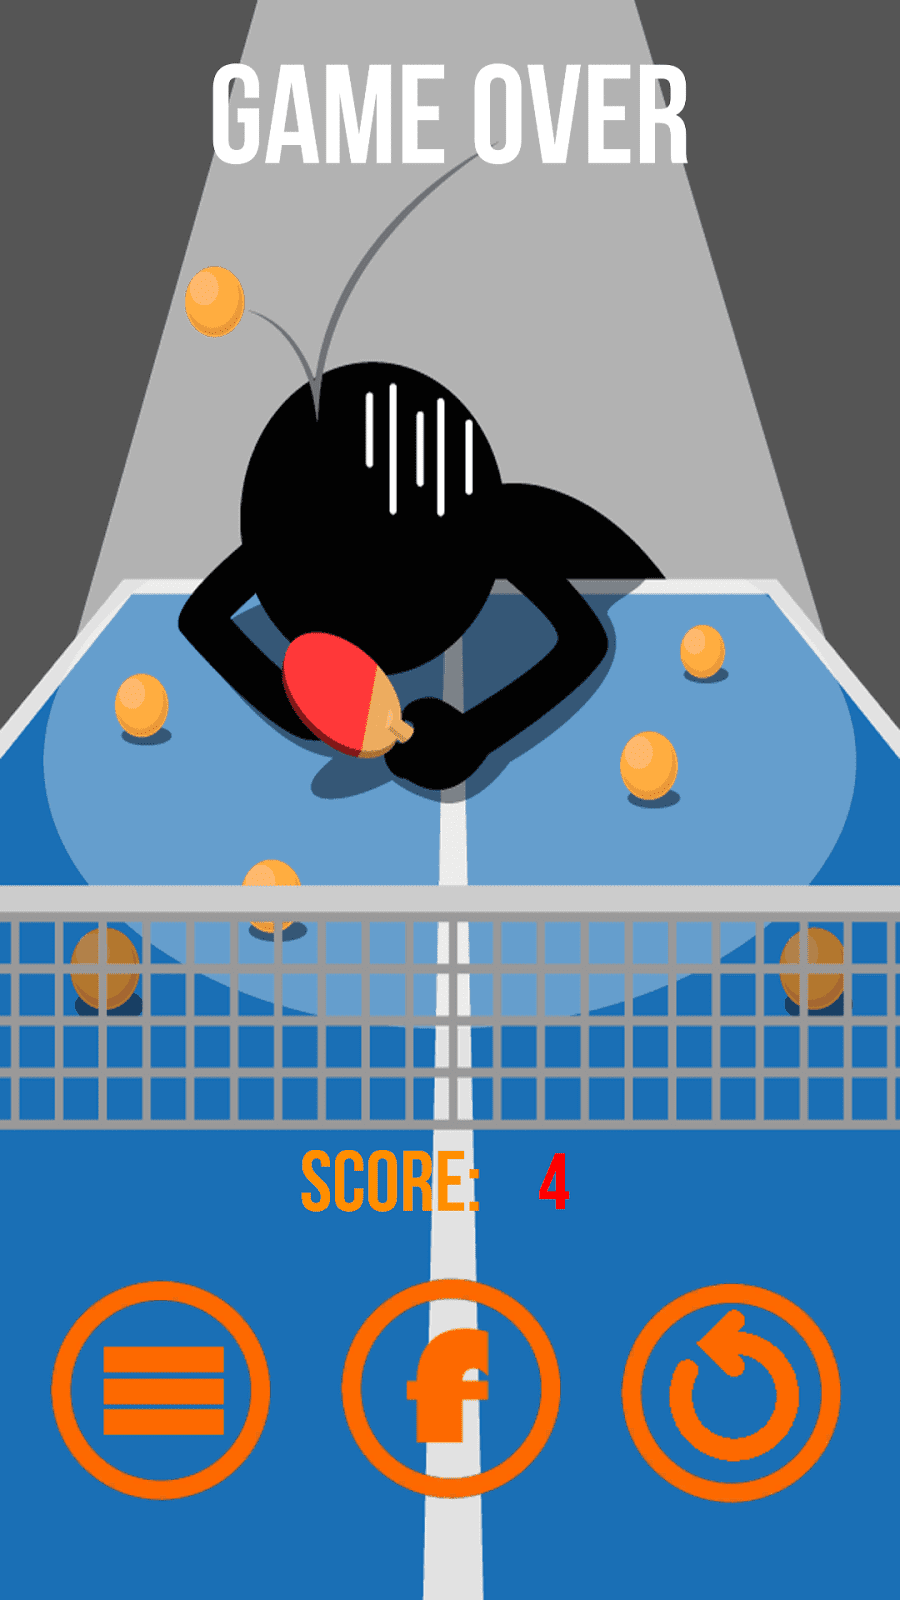 Download Source Code Reskin Game Unity Stick Man Ping Pong Complete